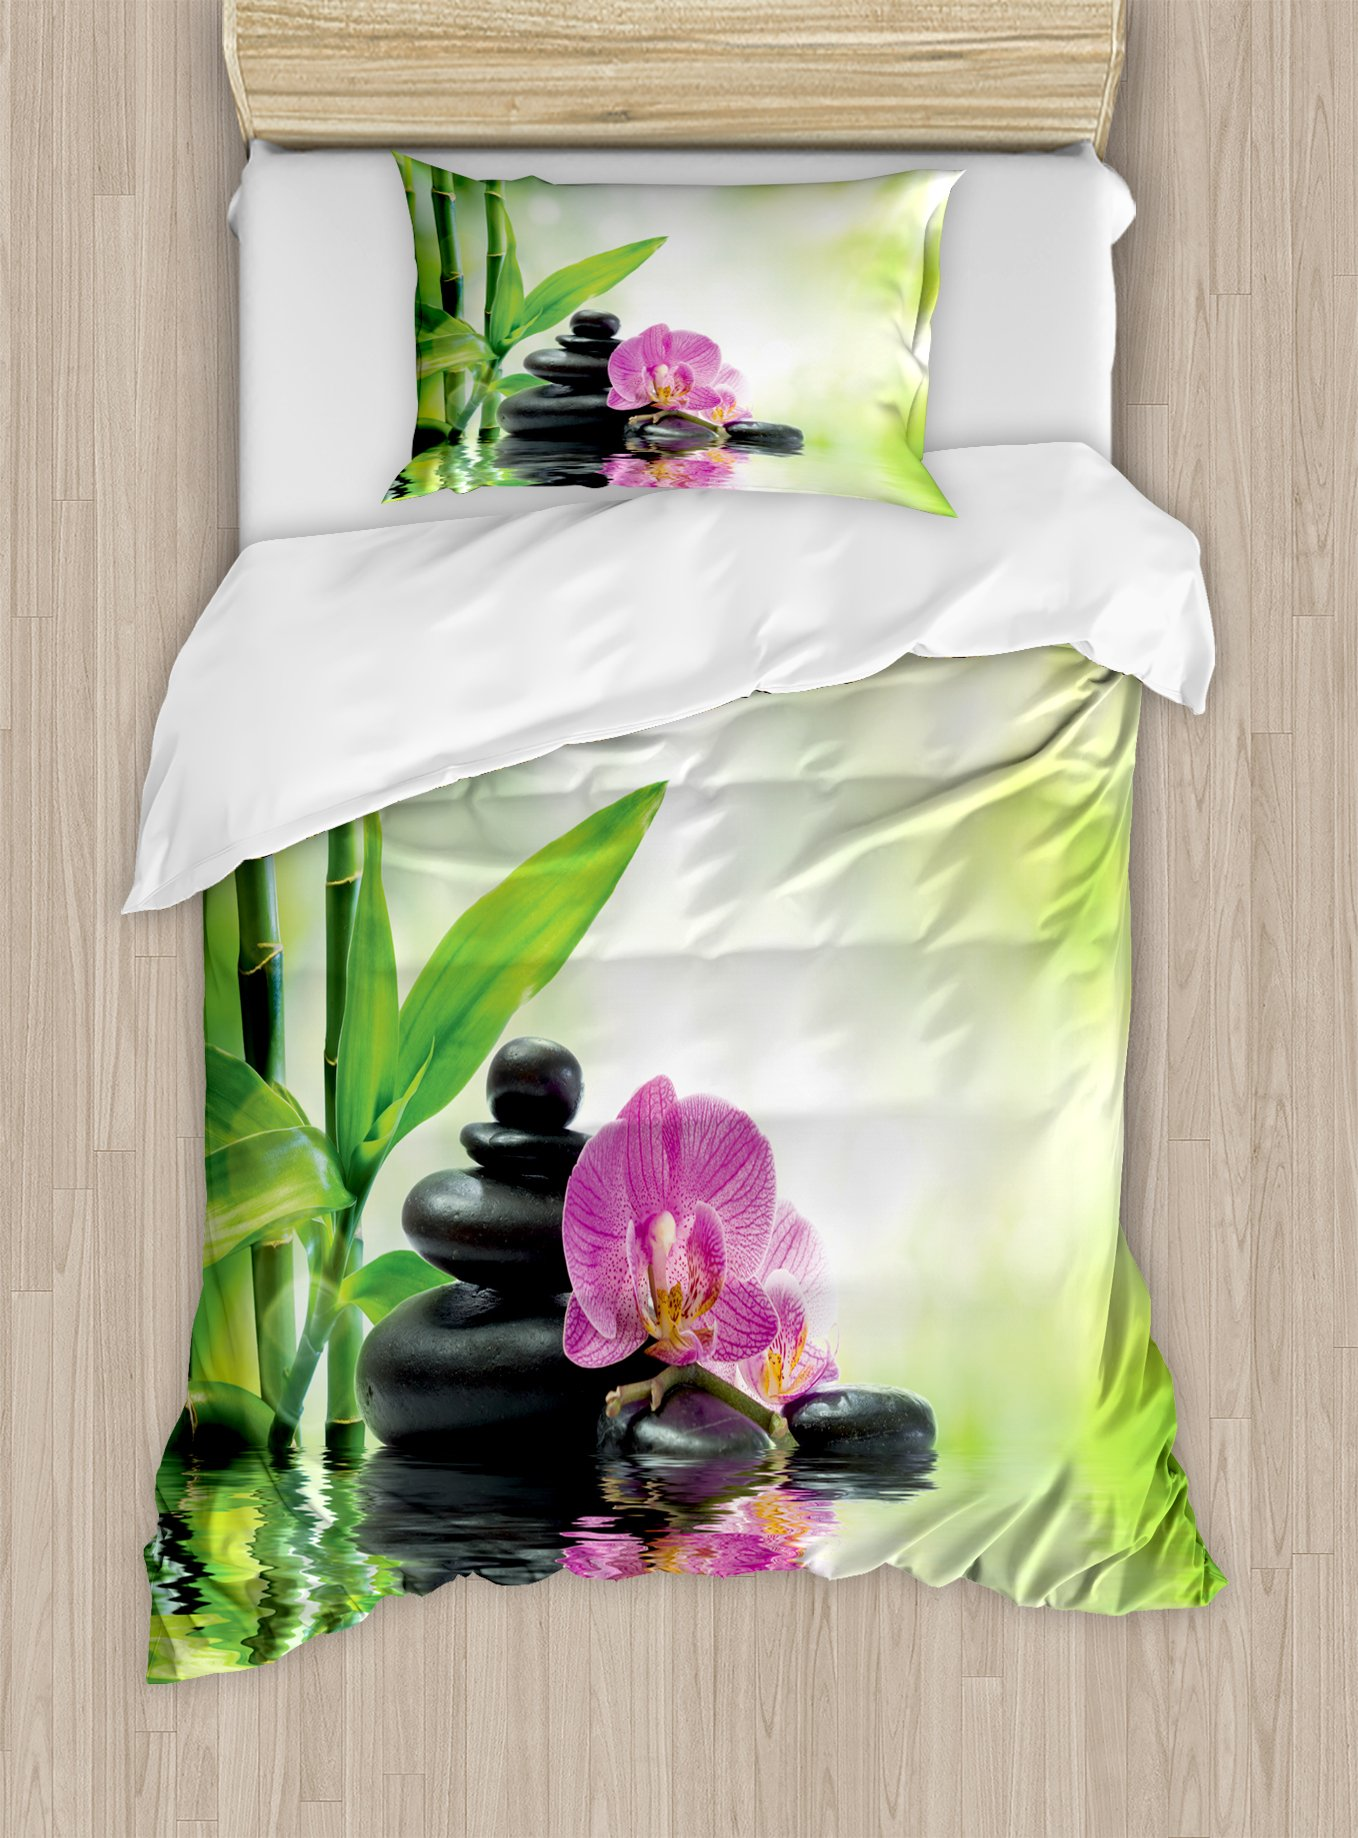 Ambesonne Spa Duvet Cover Set Twin Size, Orchids and Rocks in The Mineral Rich Spring Water Spiritual Deep Treatment Cure, Decorative 2 Piece Bedding Set with 1 Pillow Sham, Green Black Pink